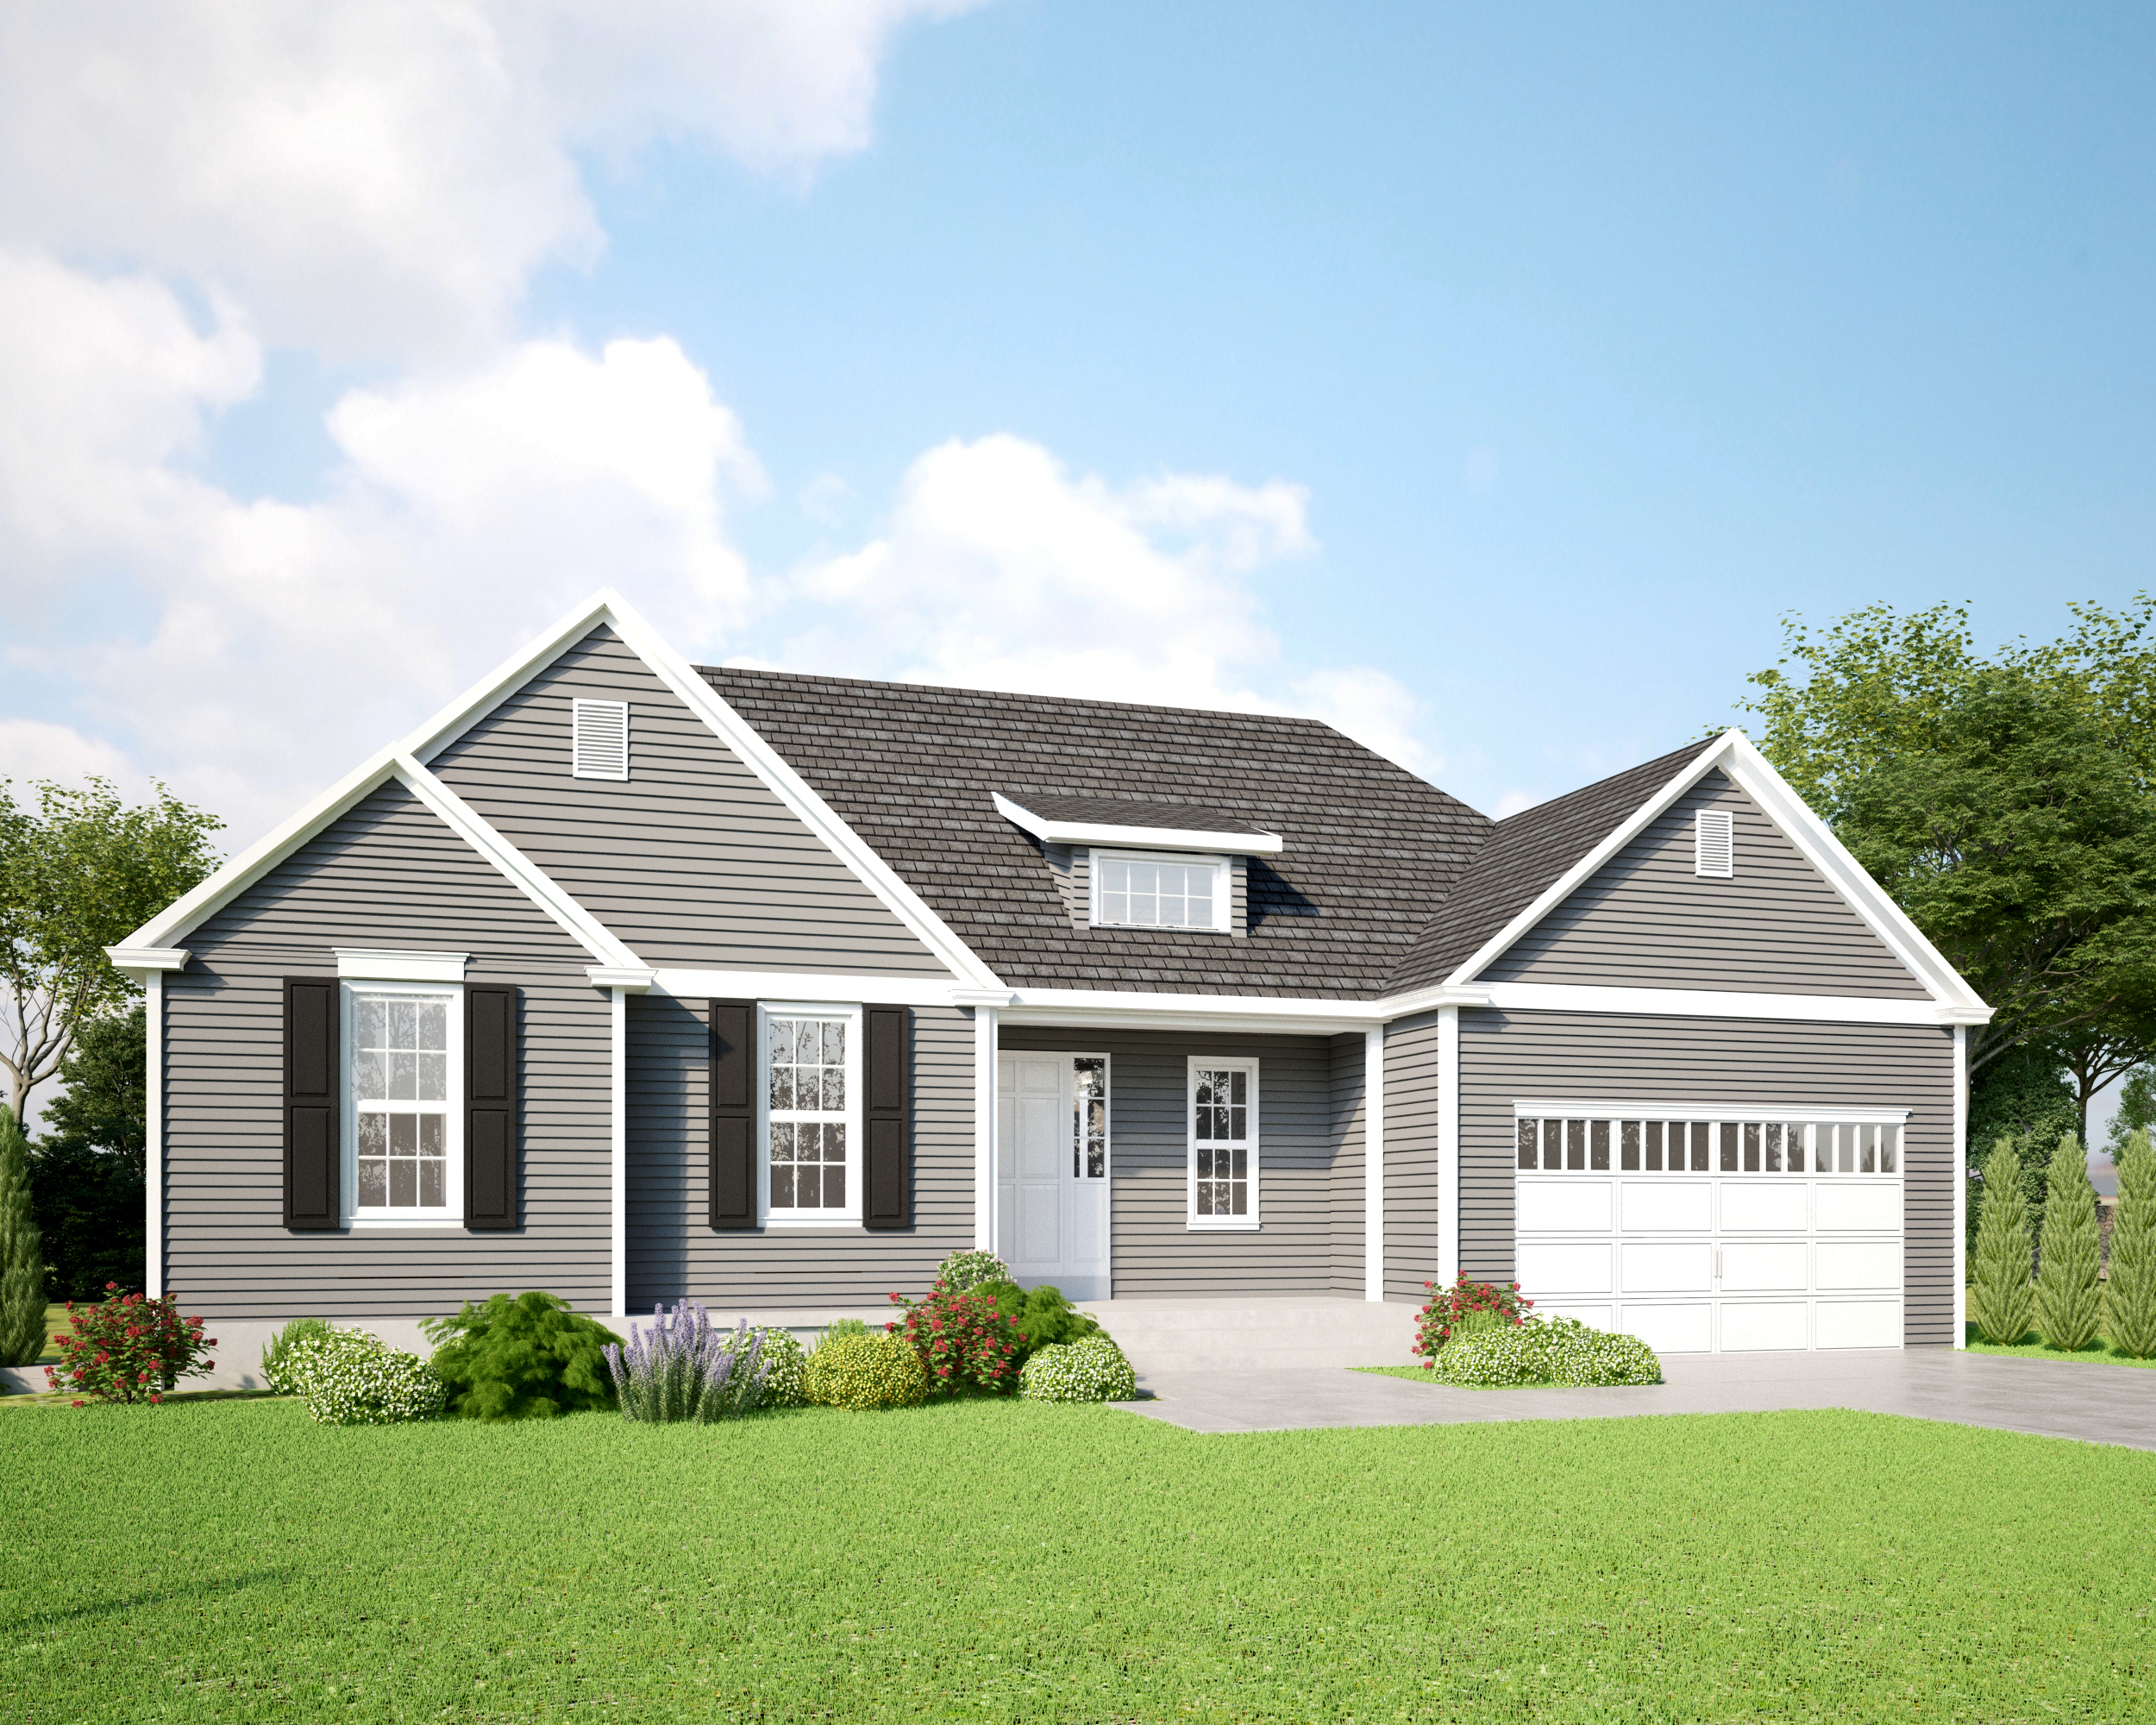 Engineered Exterior Photo of a Ranch Style Home - Gray with Stone and Black Shutters